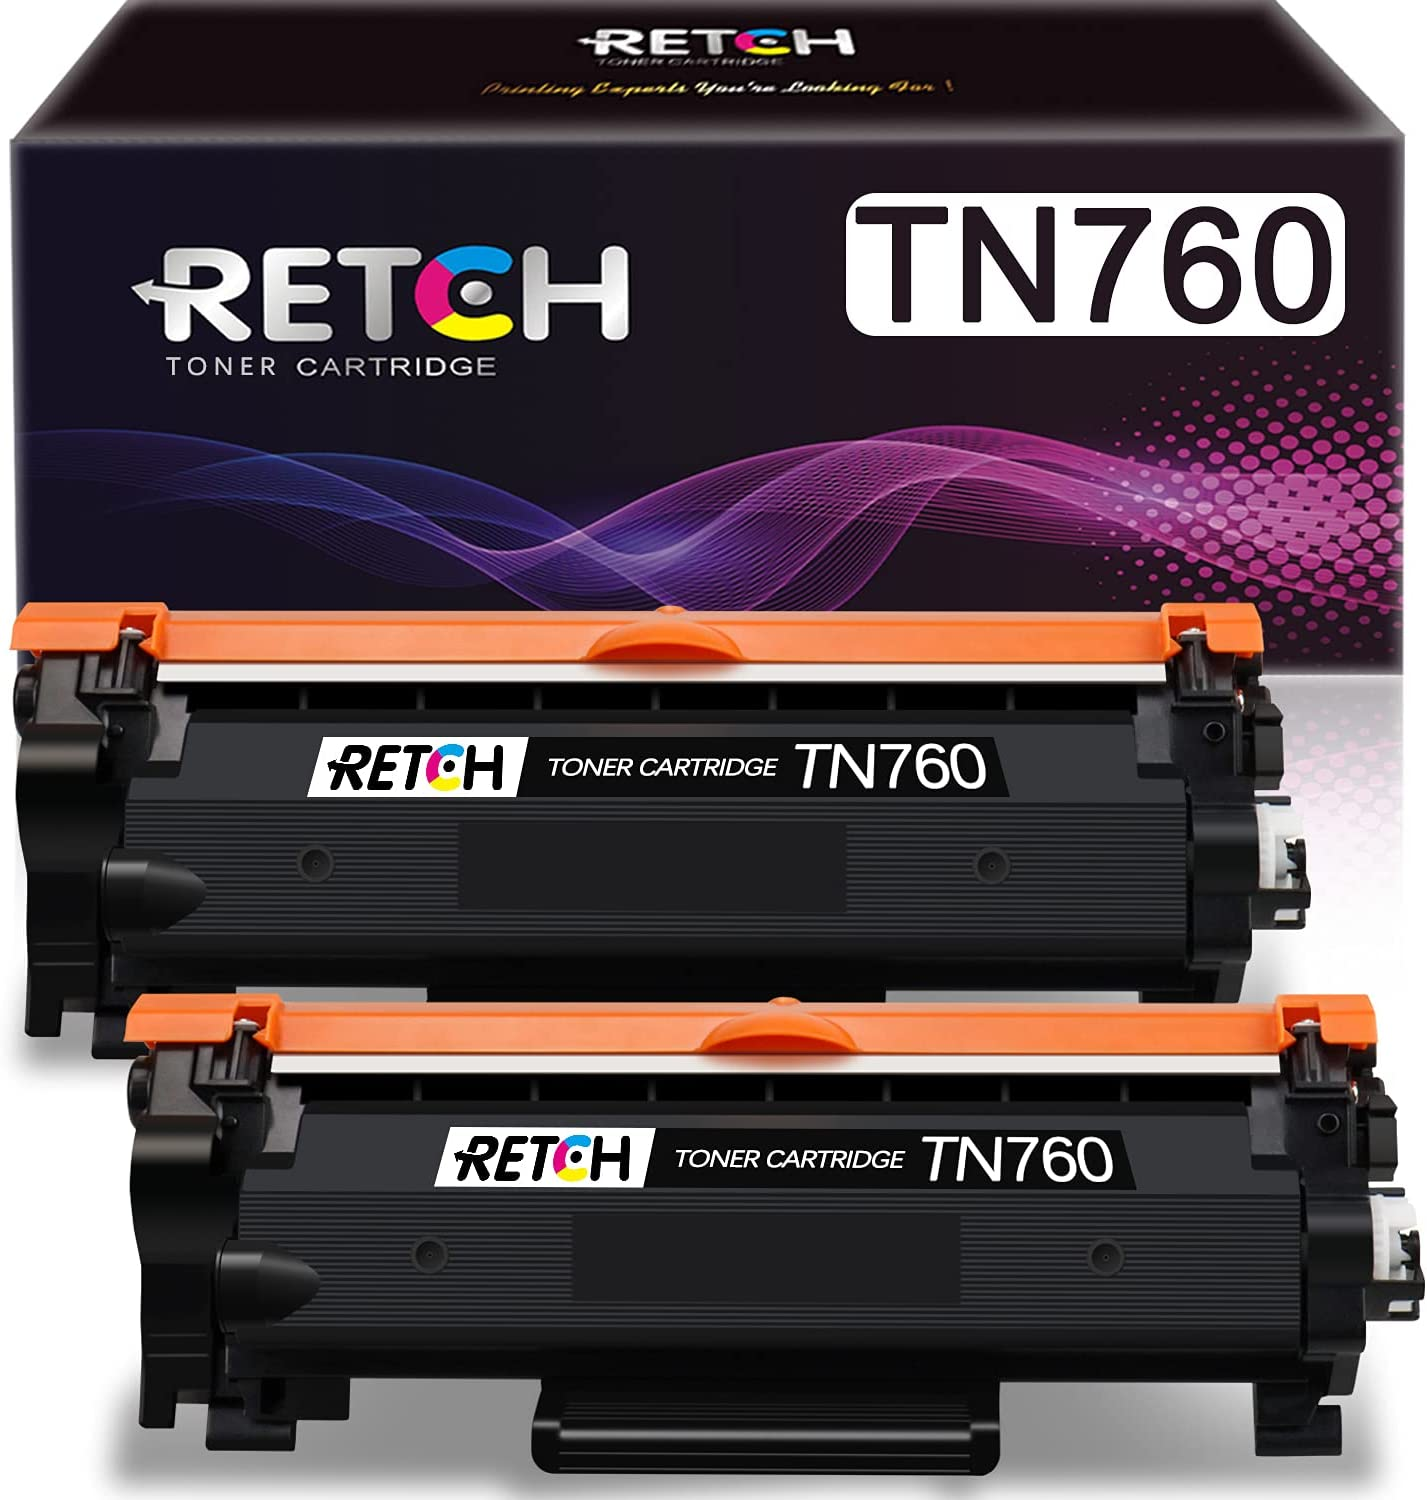 RETCH Compatible Toner Cartridges Tray 2 Pack Black Replacement for Brother TN760 TN-730 to use with Brother HL-2350DW HL-2370DW HL-L2359DW HL-2390DW MFC-L2710DW Printer